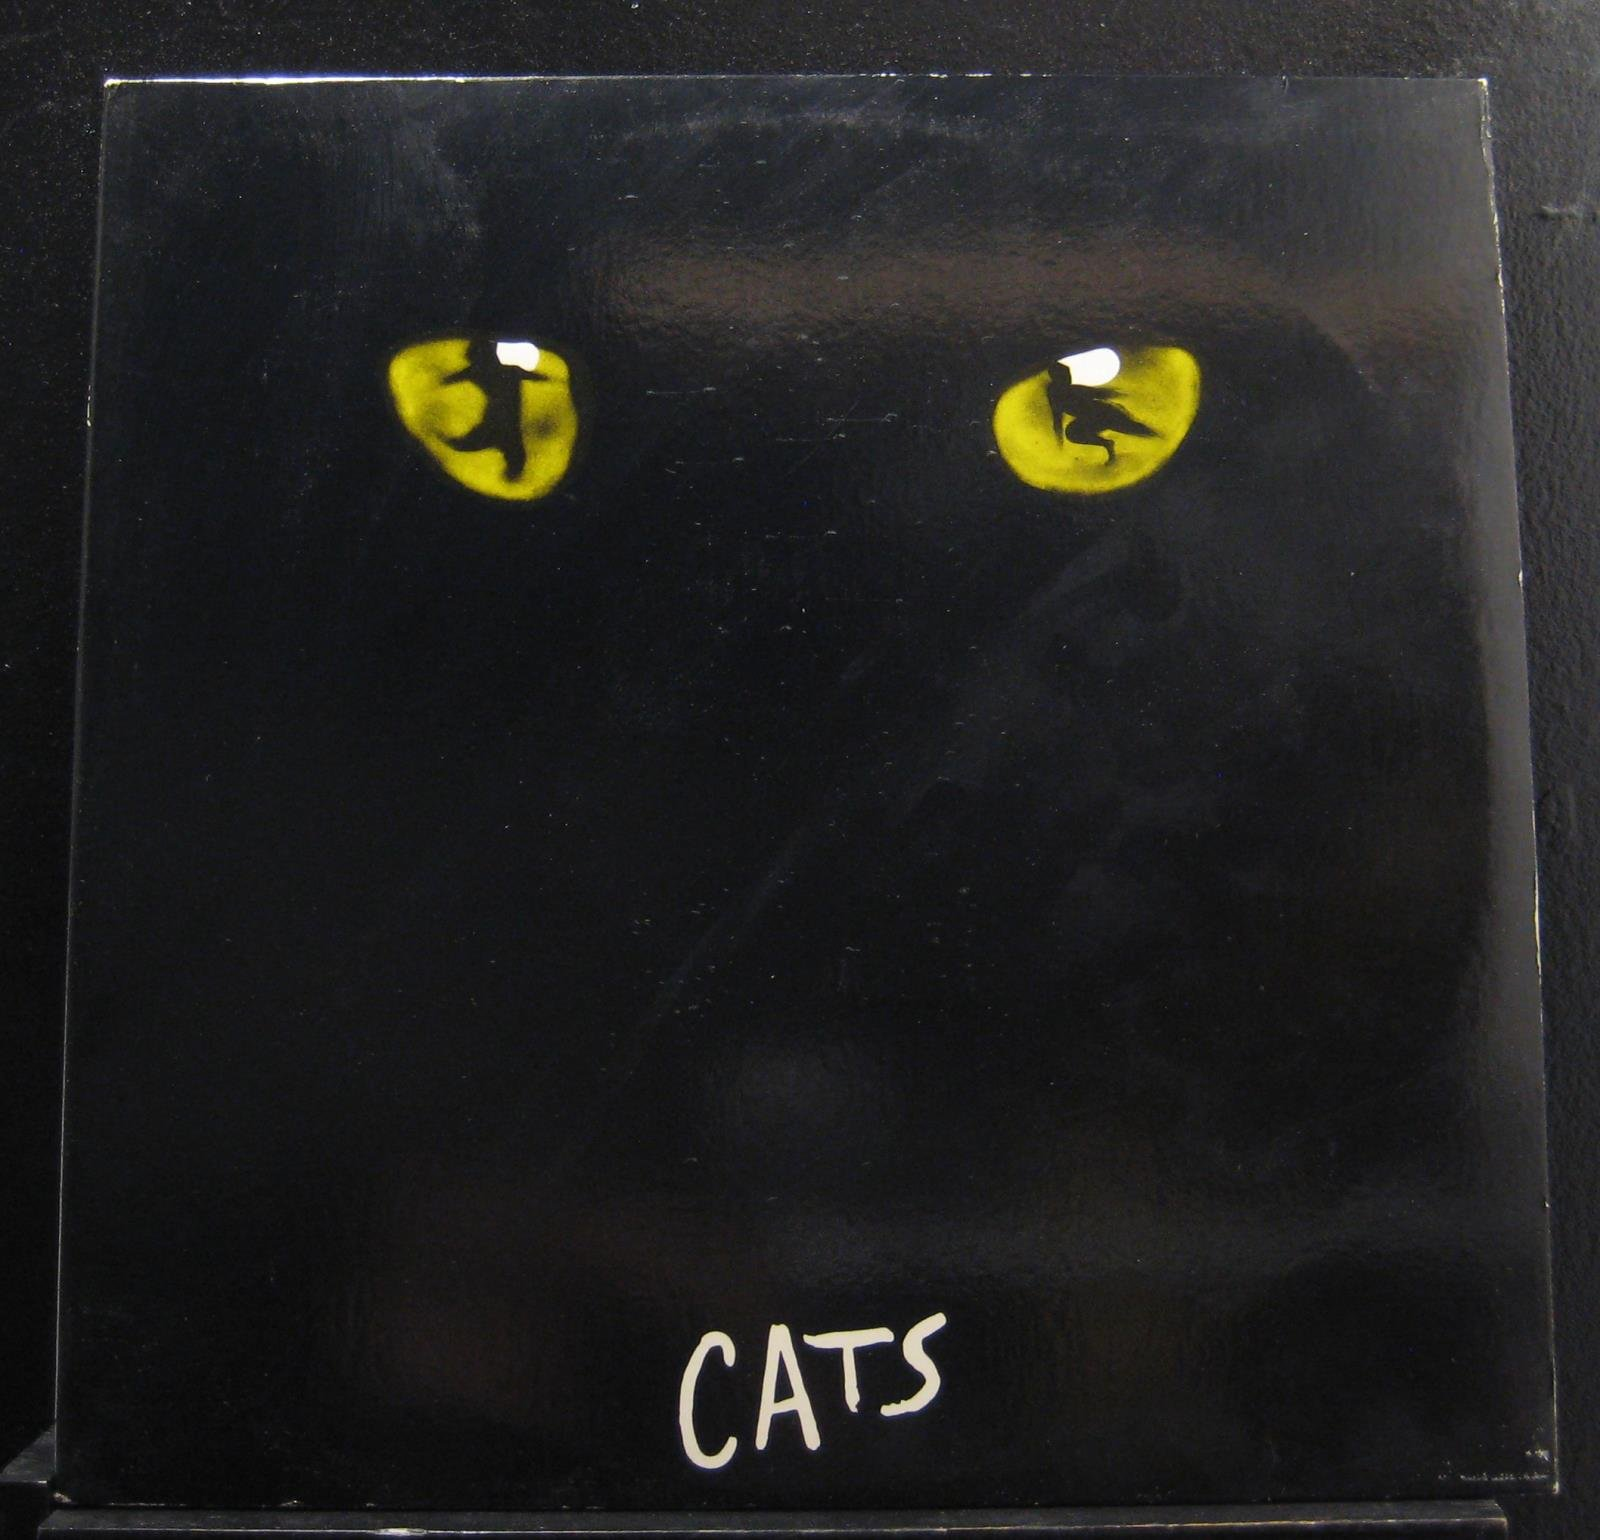 Cats: Original Broadway Cast Recording (2 LPS) Original inner sleeves with lyrics.